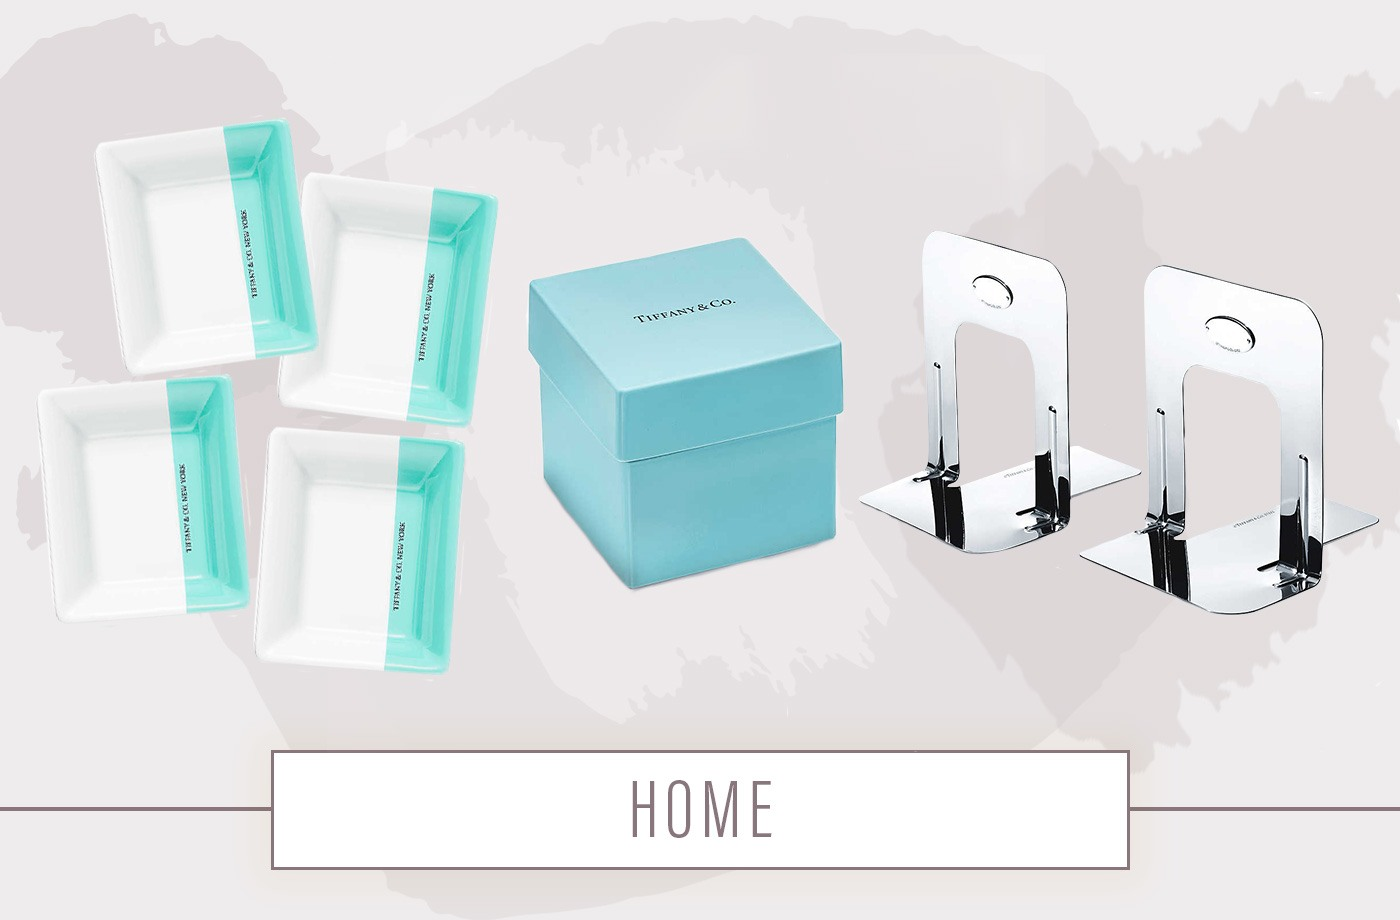 Tiffany & Co graduation gifts for home